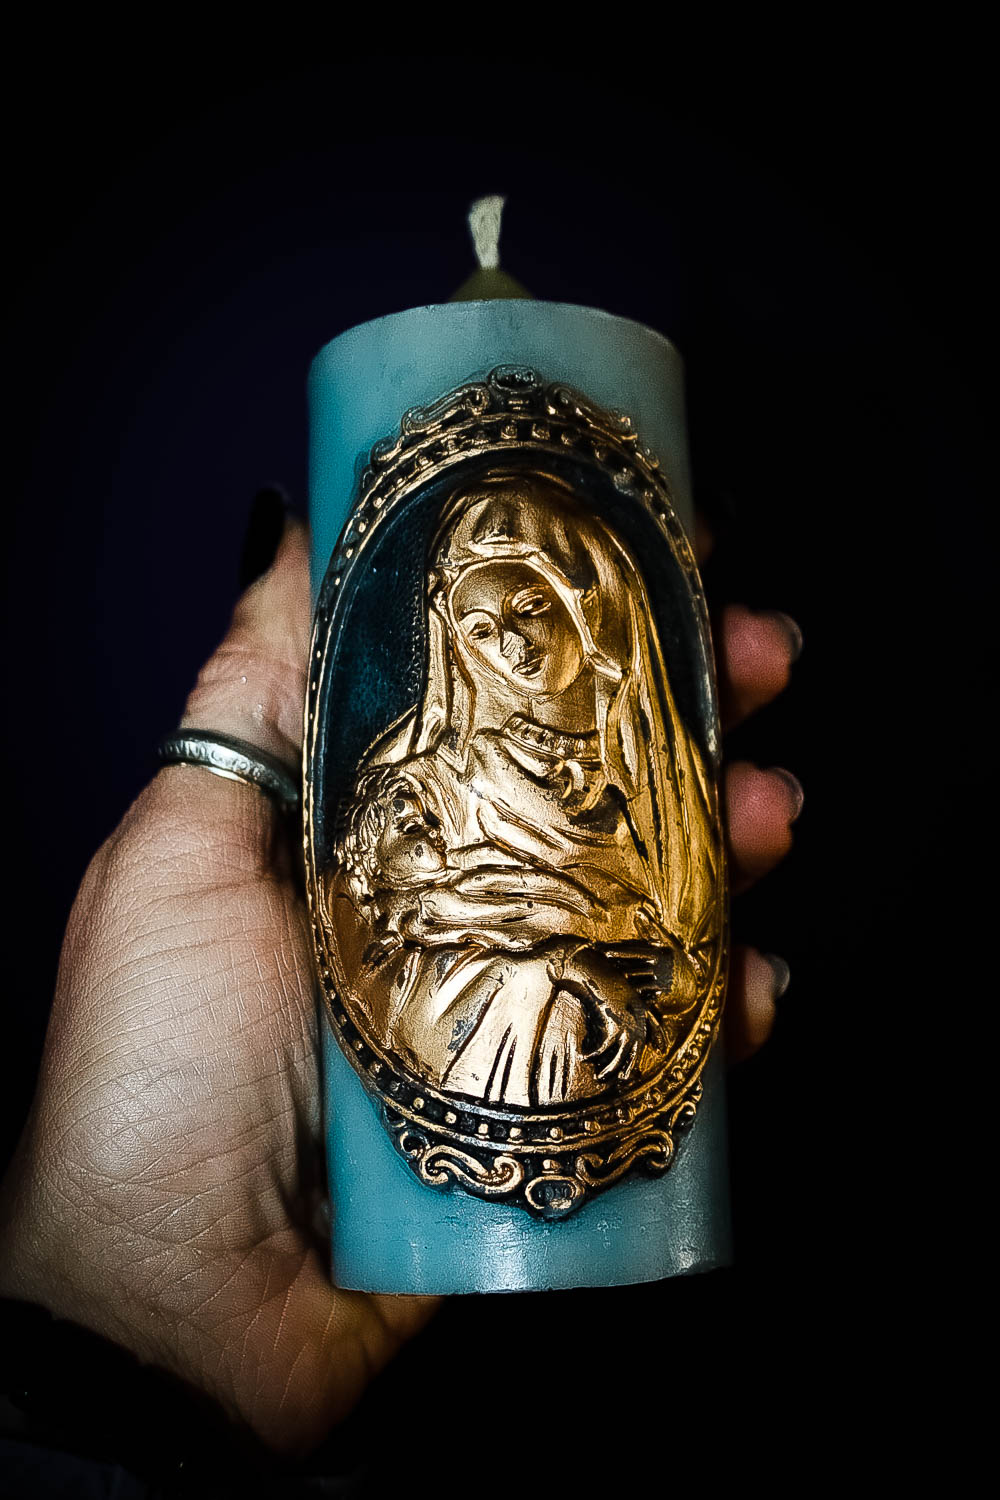 Mary Candle Vintage from Hershey Chocolate company